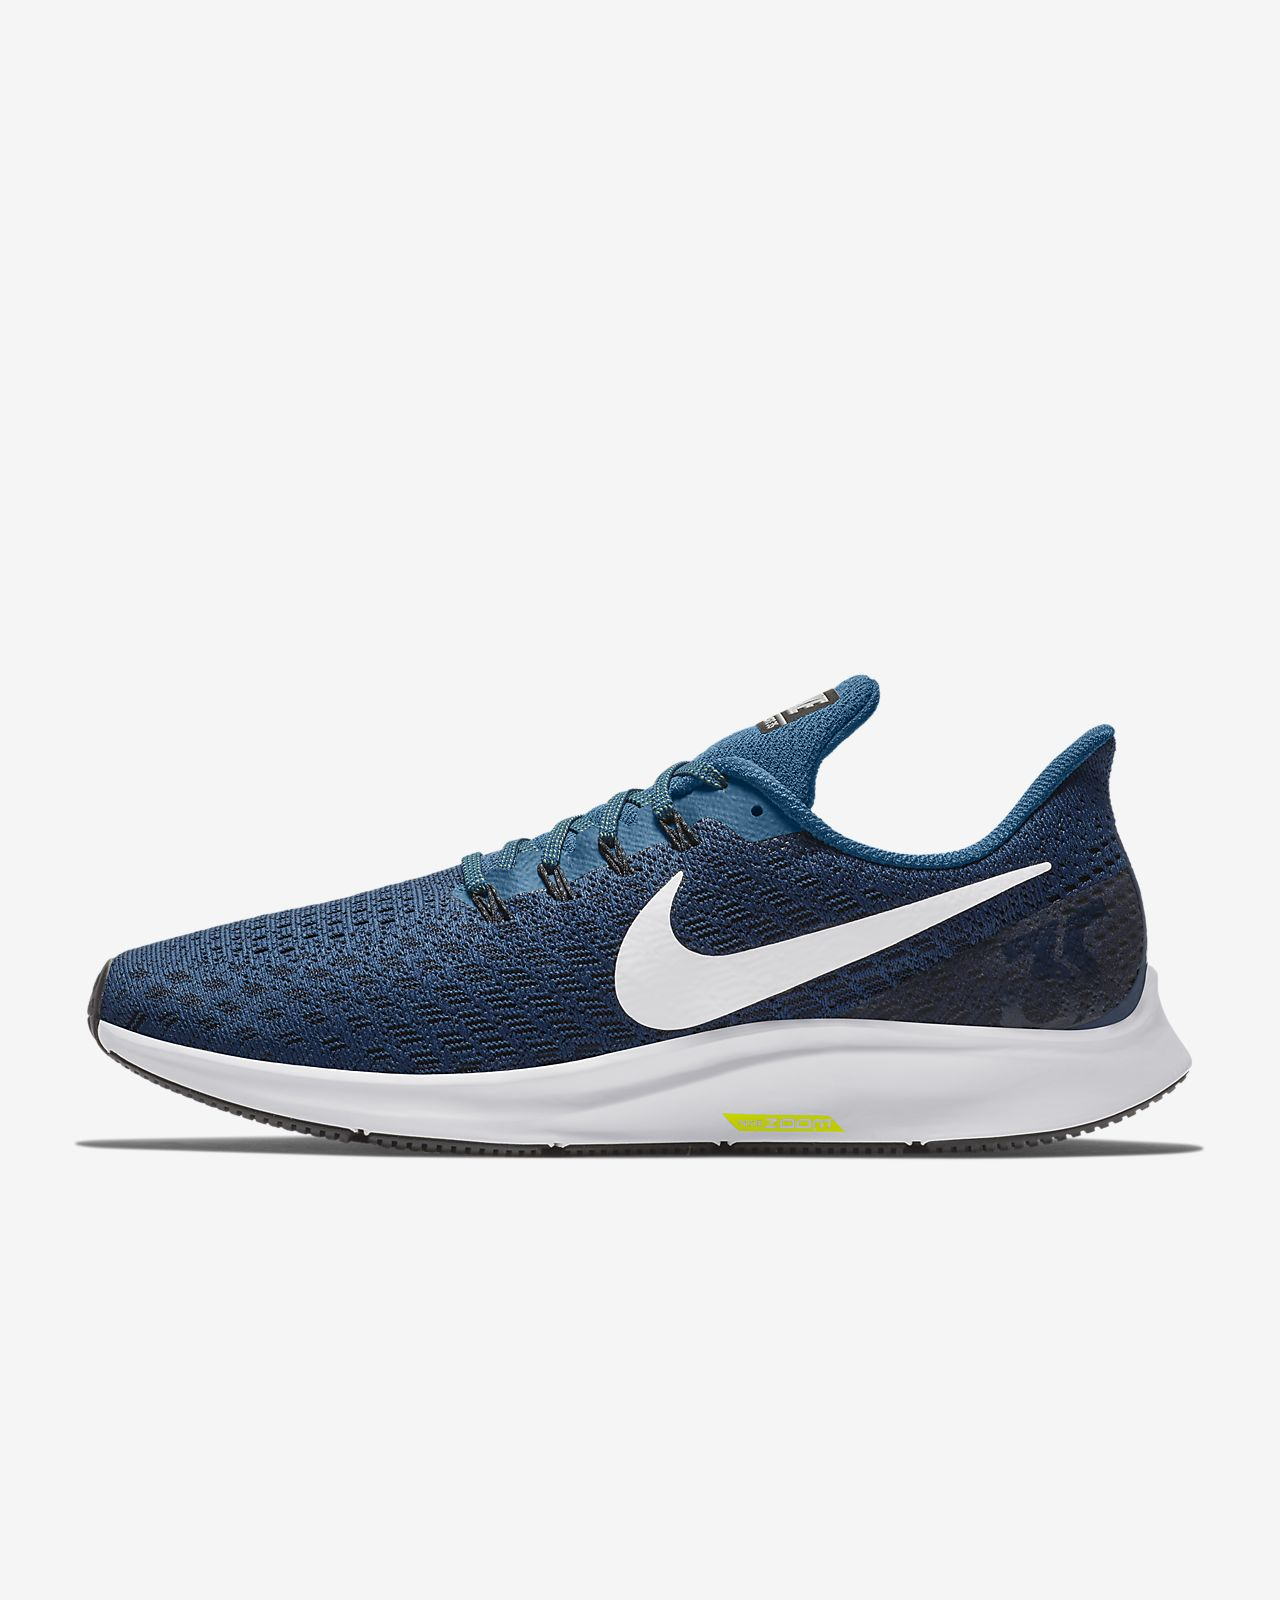 9e1c64a90146 Nike Air Zoom Pegasus 35 Men s Running Shoe. Nike.com AU